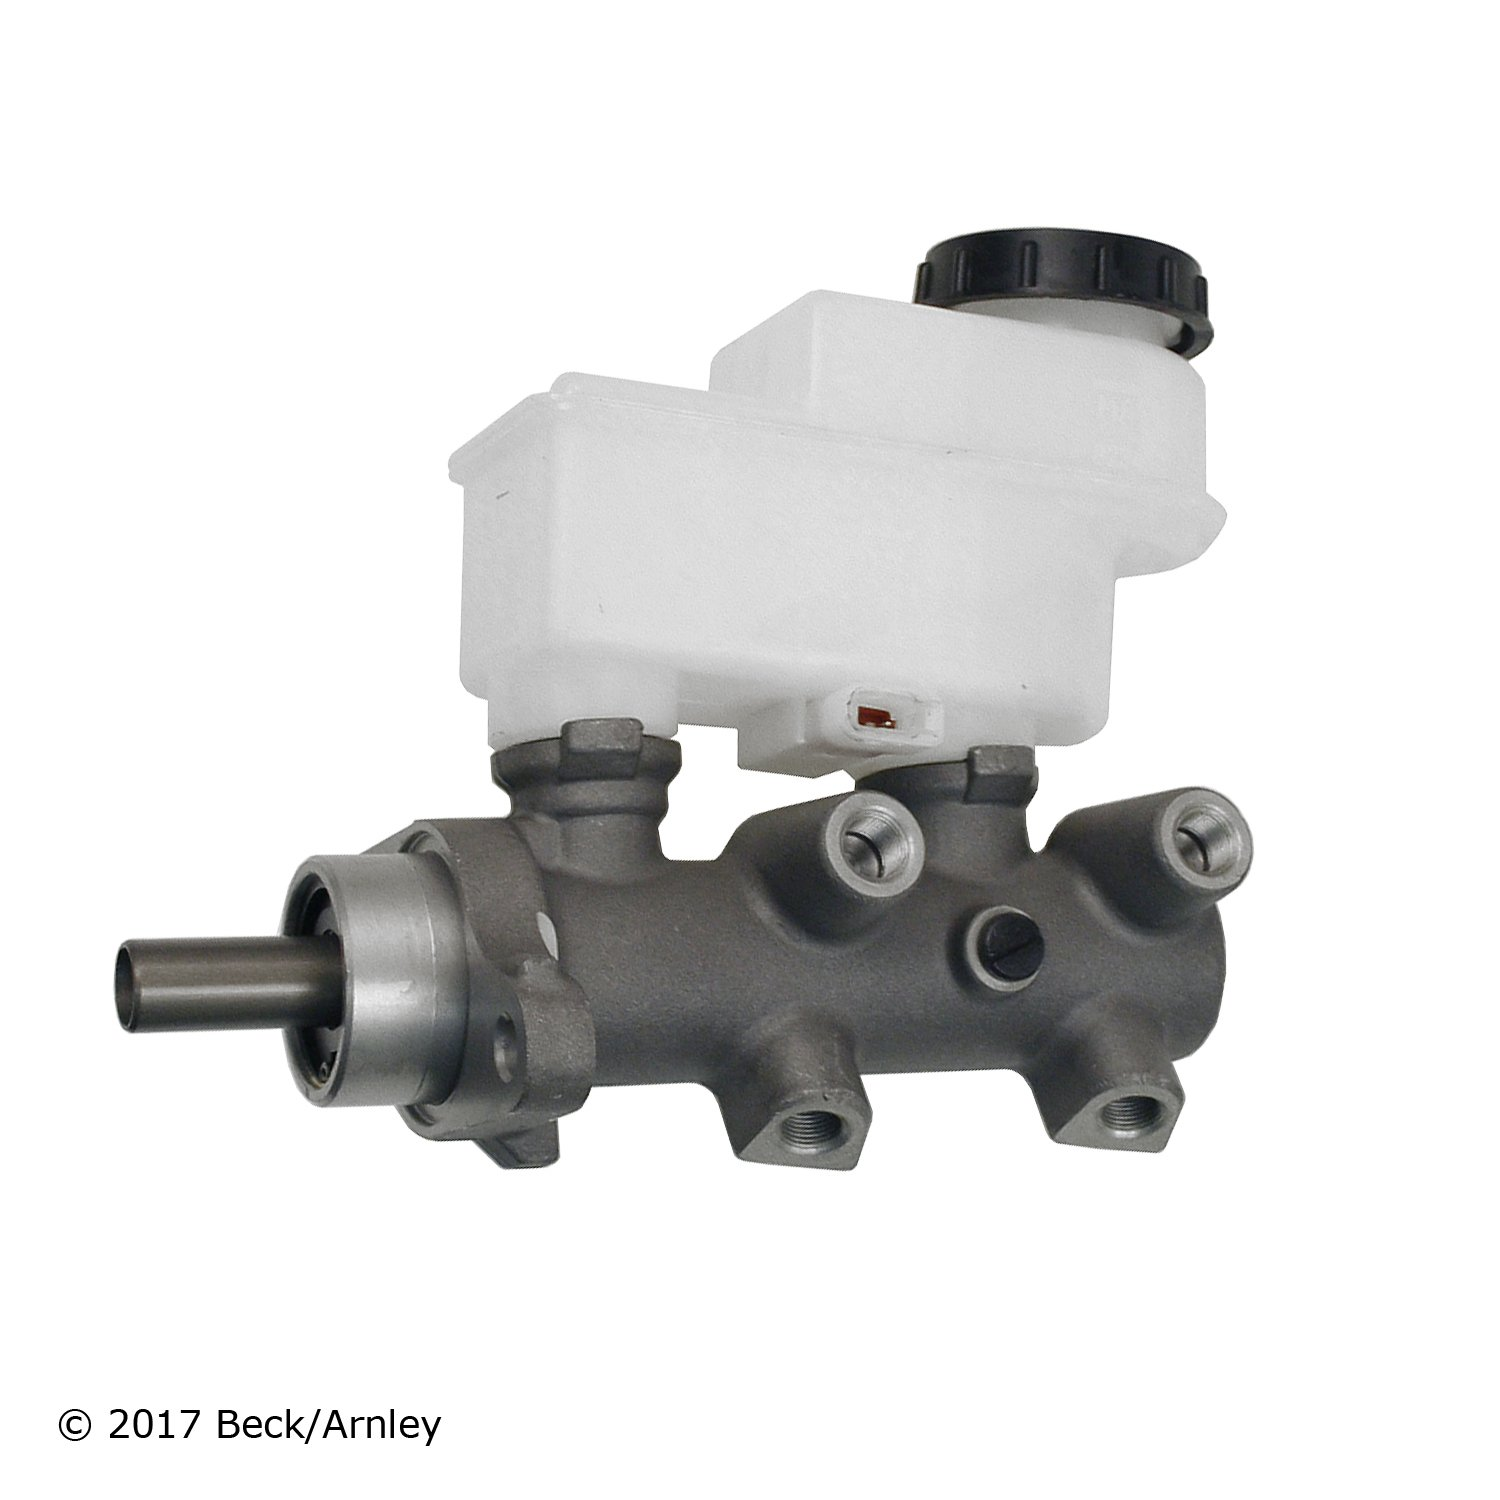 A1 Cardone Brake Master Cylinder New for Nissan Titan 13-3239N